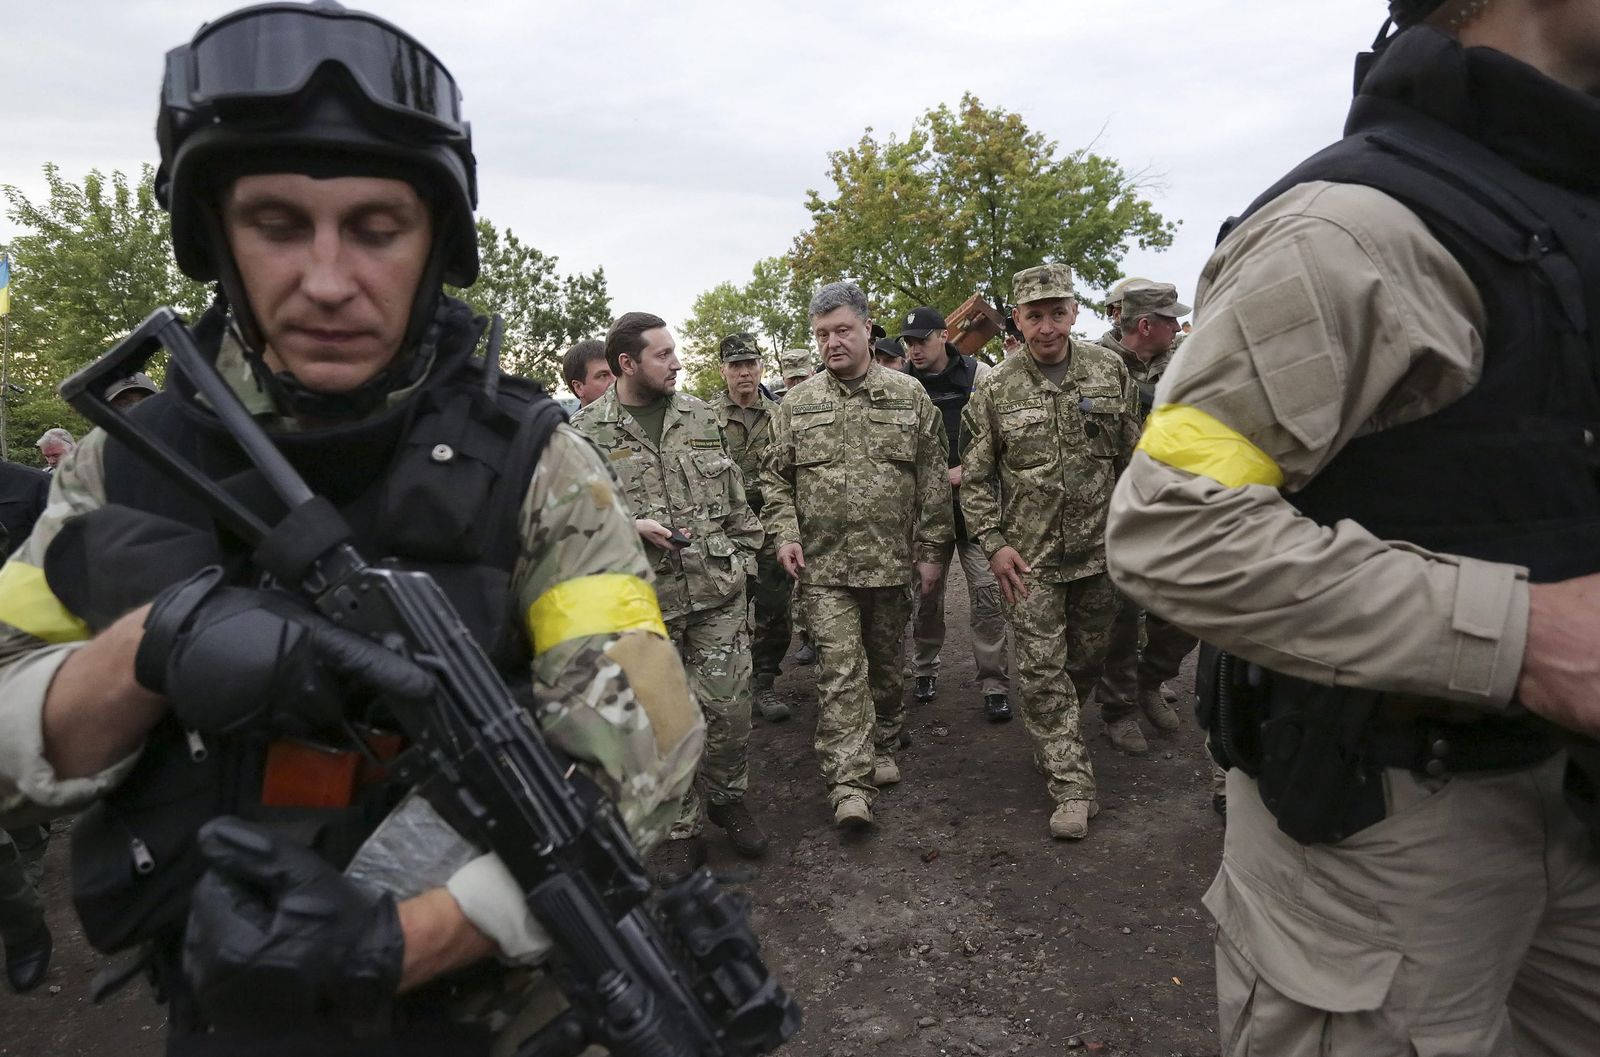 Ukraine rejects any talks or ceasefire with separatists